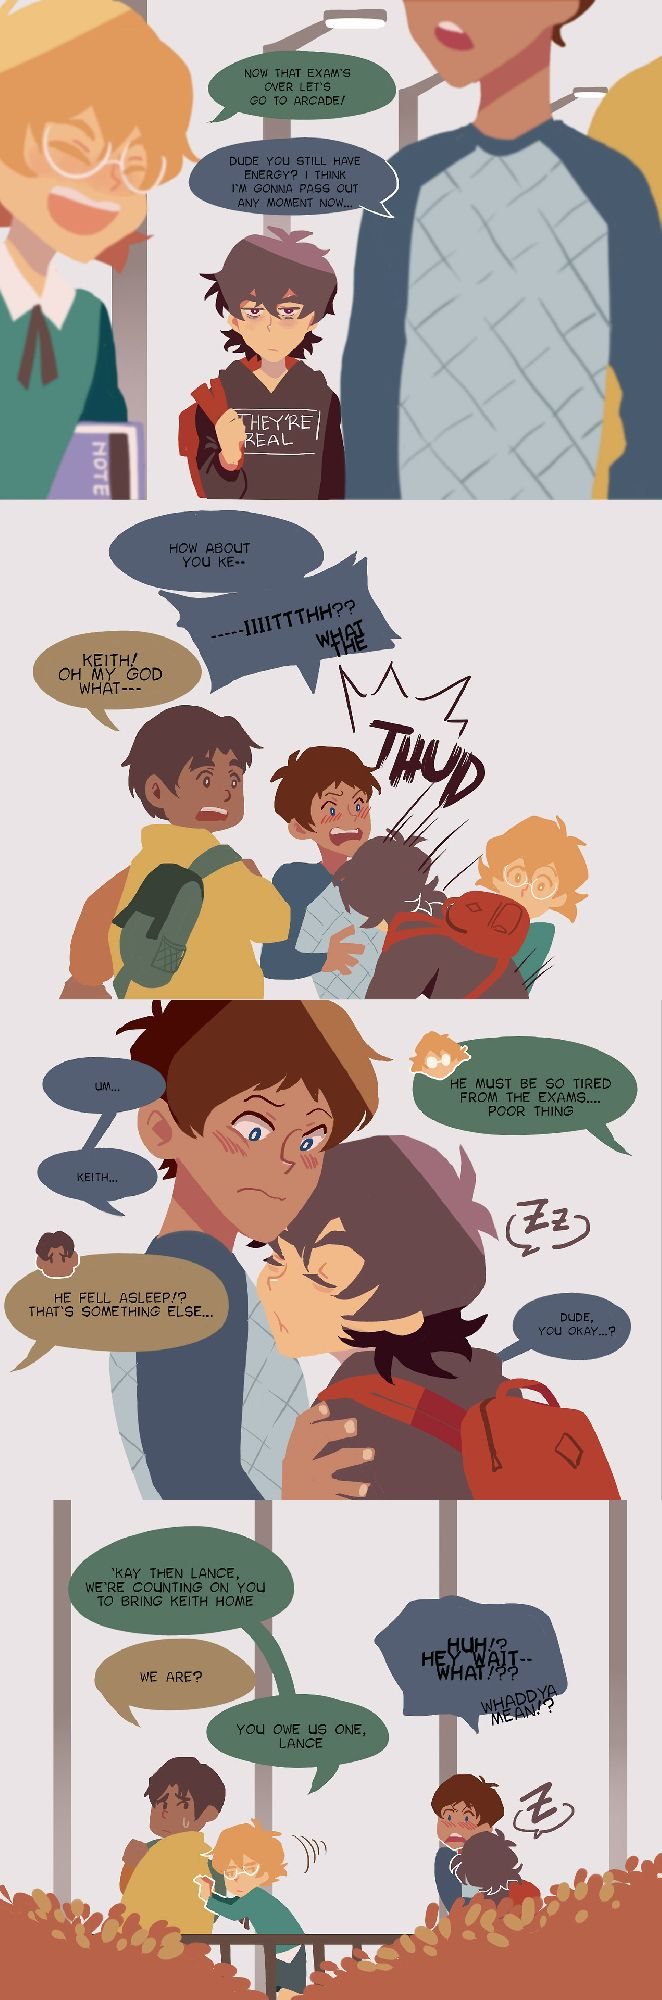 Keith / Lance | Pidge | Hunk **marchingspace**